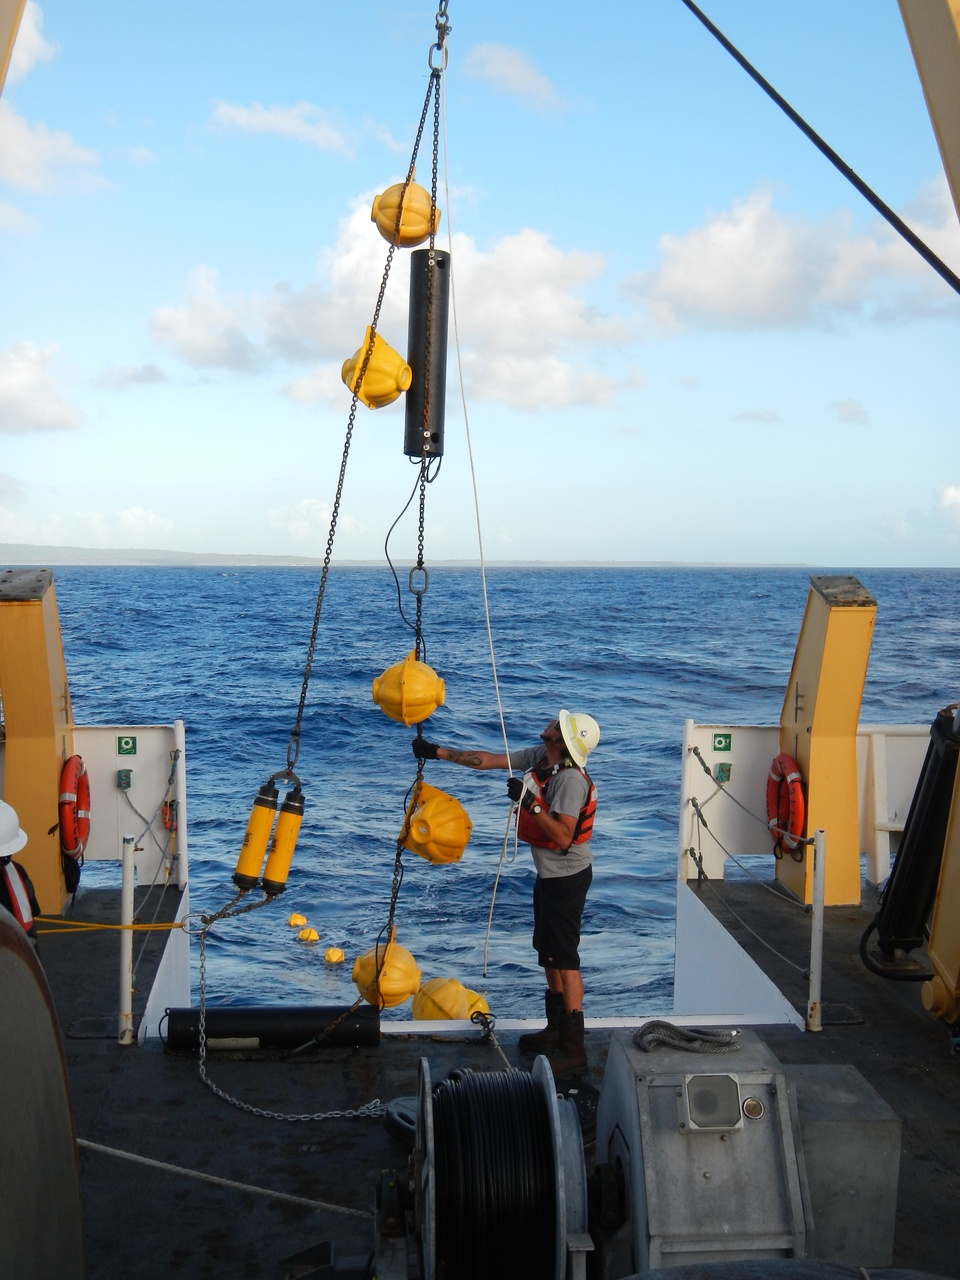 High-frequency Acoustic Recording Packages (HARPs) are long-term acoustic recorders used to record a very broad frequency range; a broad frequency range enables us to hear more cetacean species. A HARP package is deployed at a specific location, then recovered after months to years to obtain its recorded data and identify the species detected by the HARP.